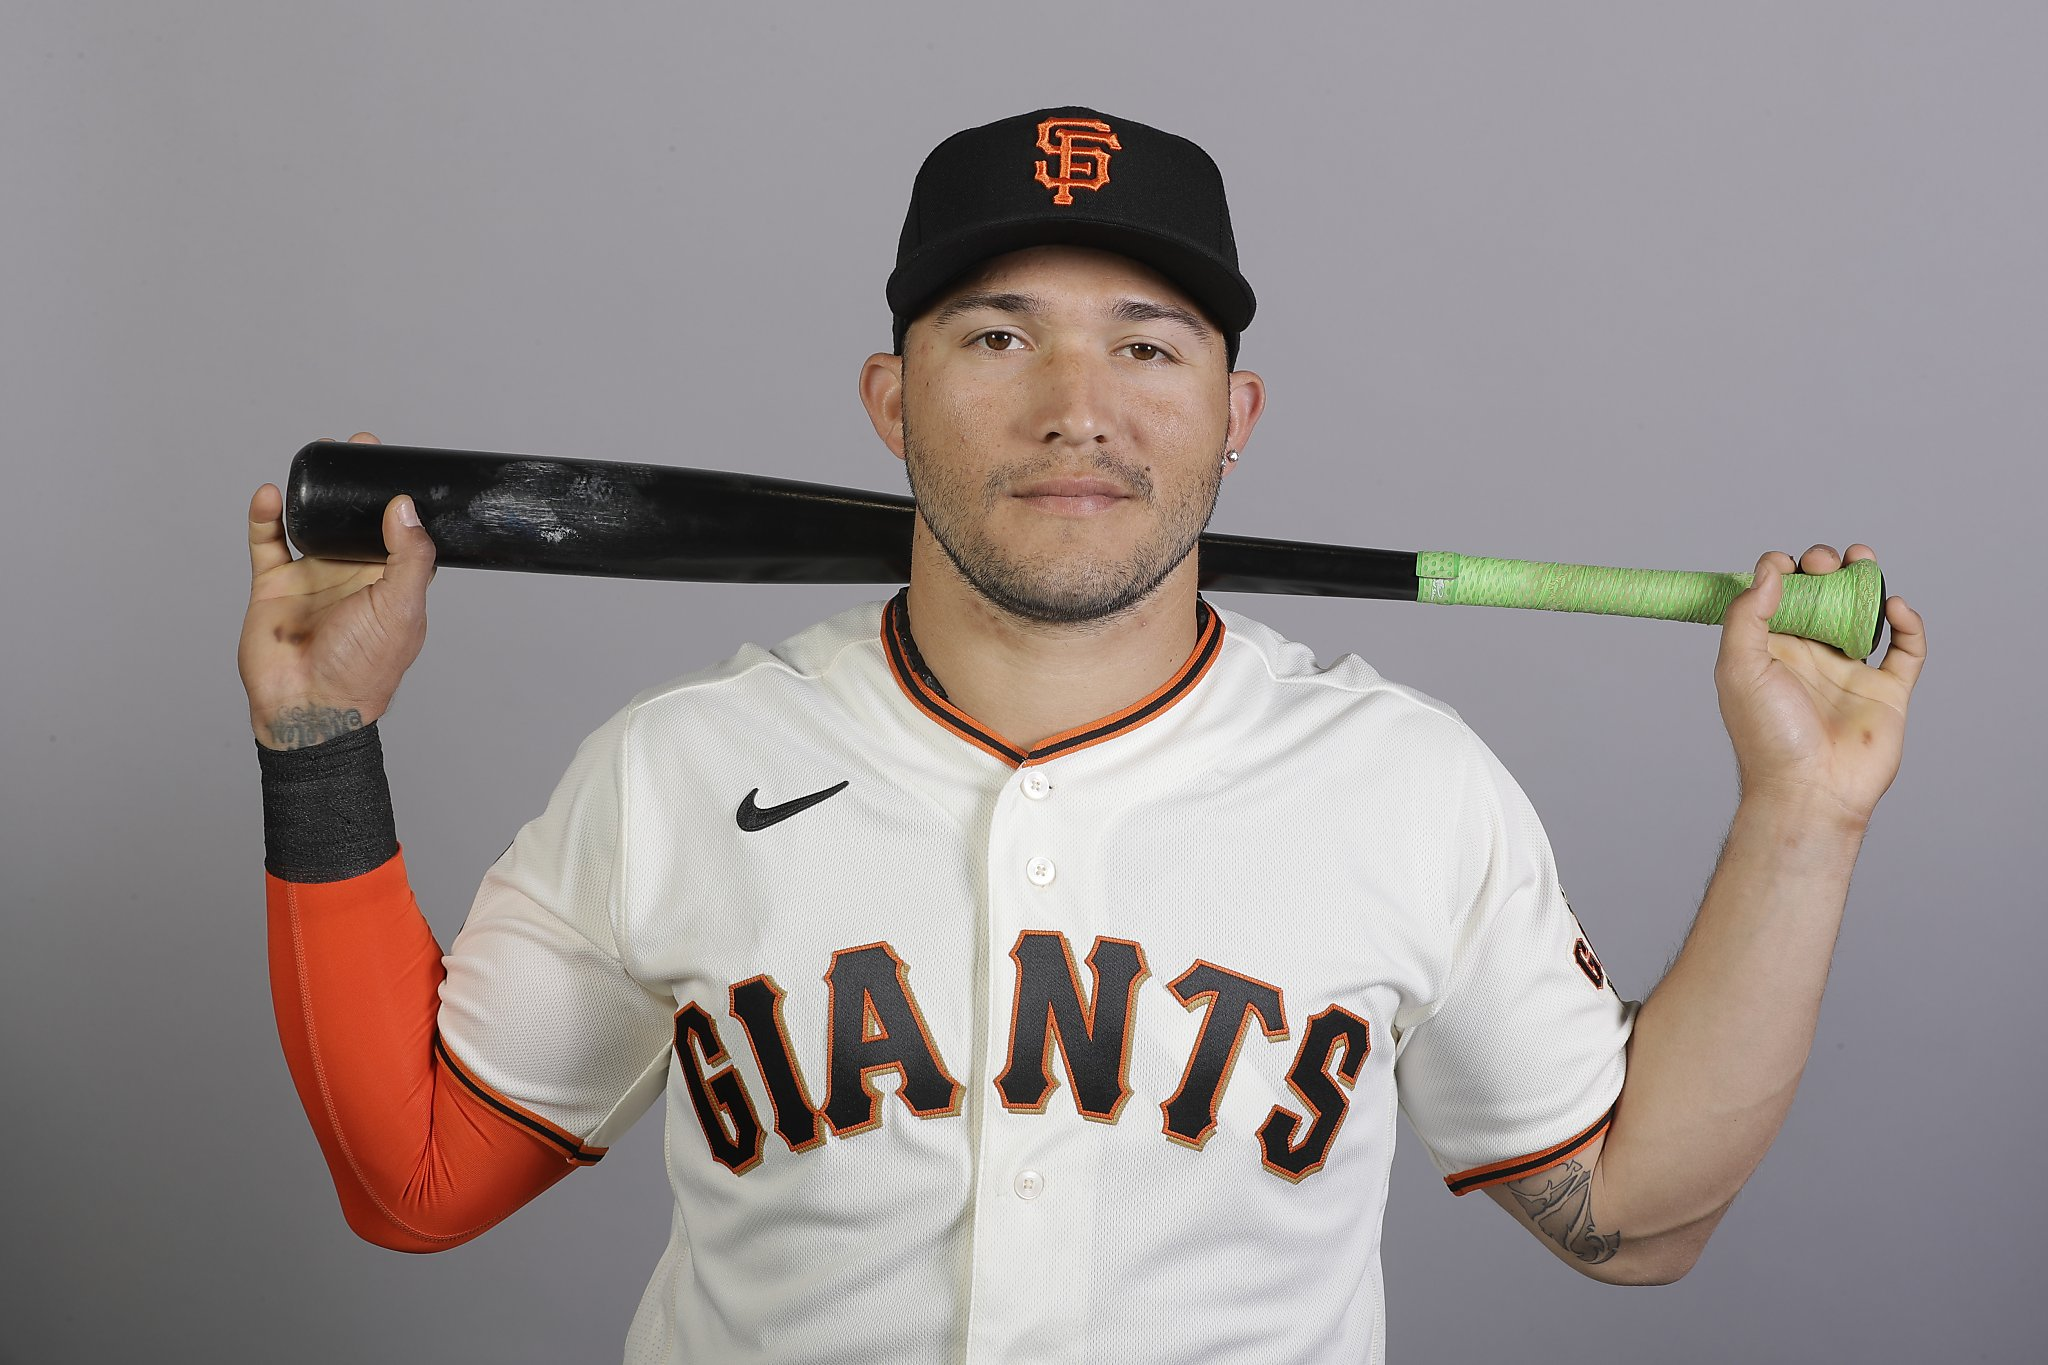 Giants' Yolmer Sanchez: From a Gold Glove to the unemployment line